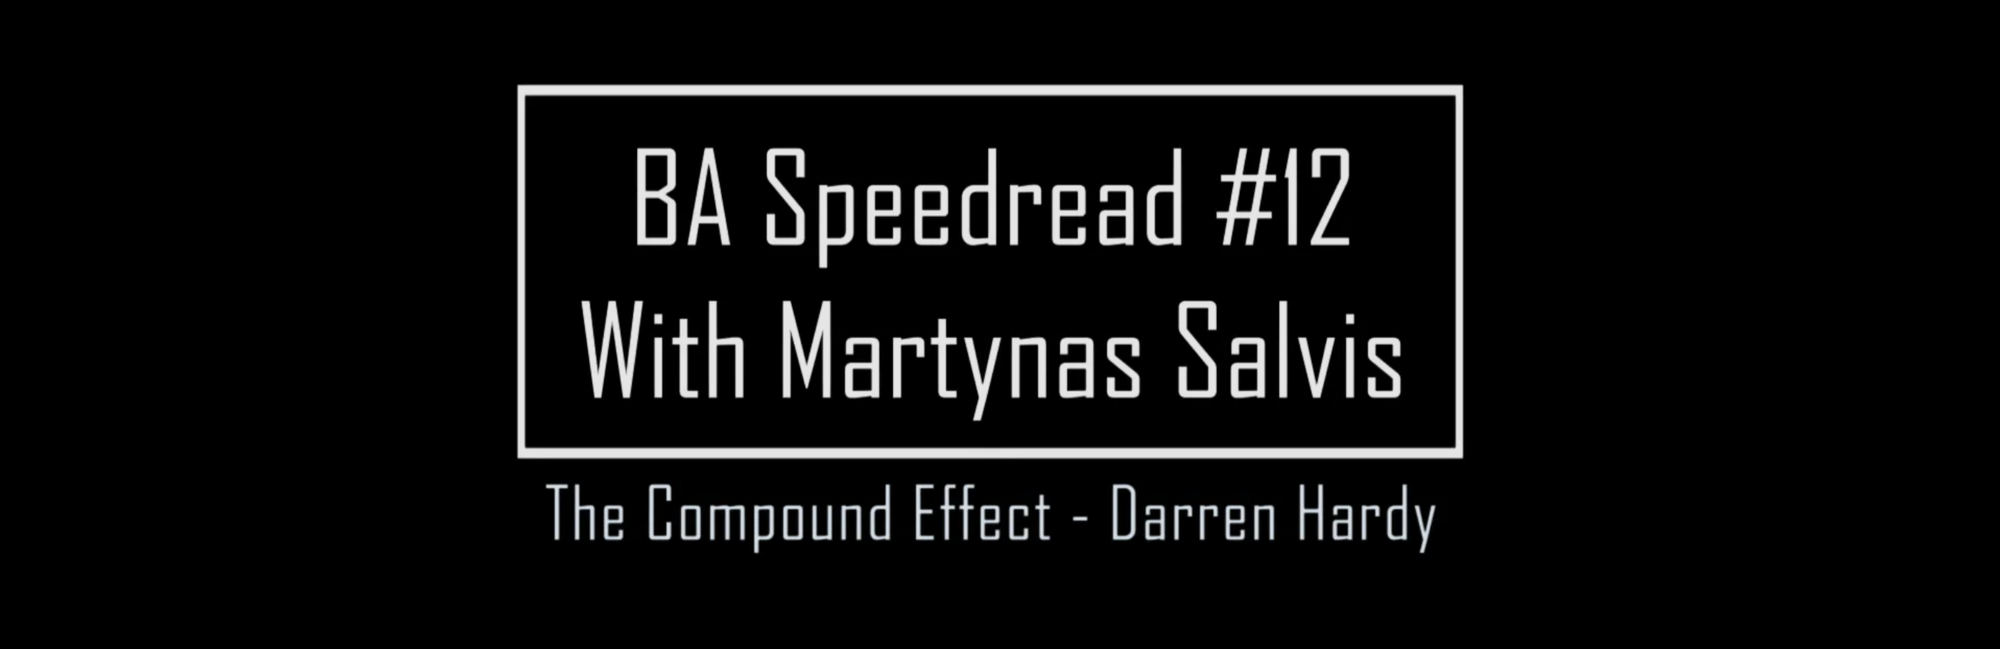 BA Speedread #12 with Martynas